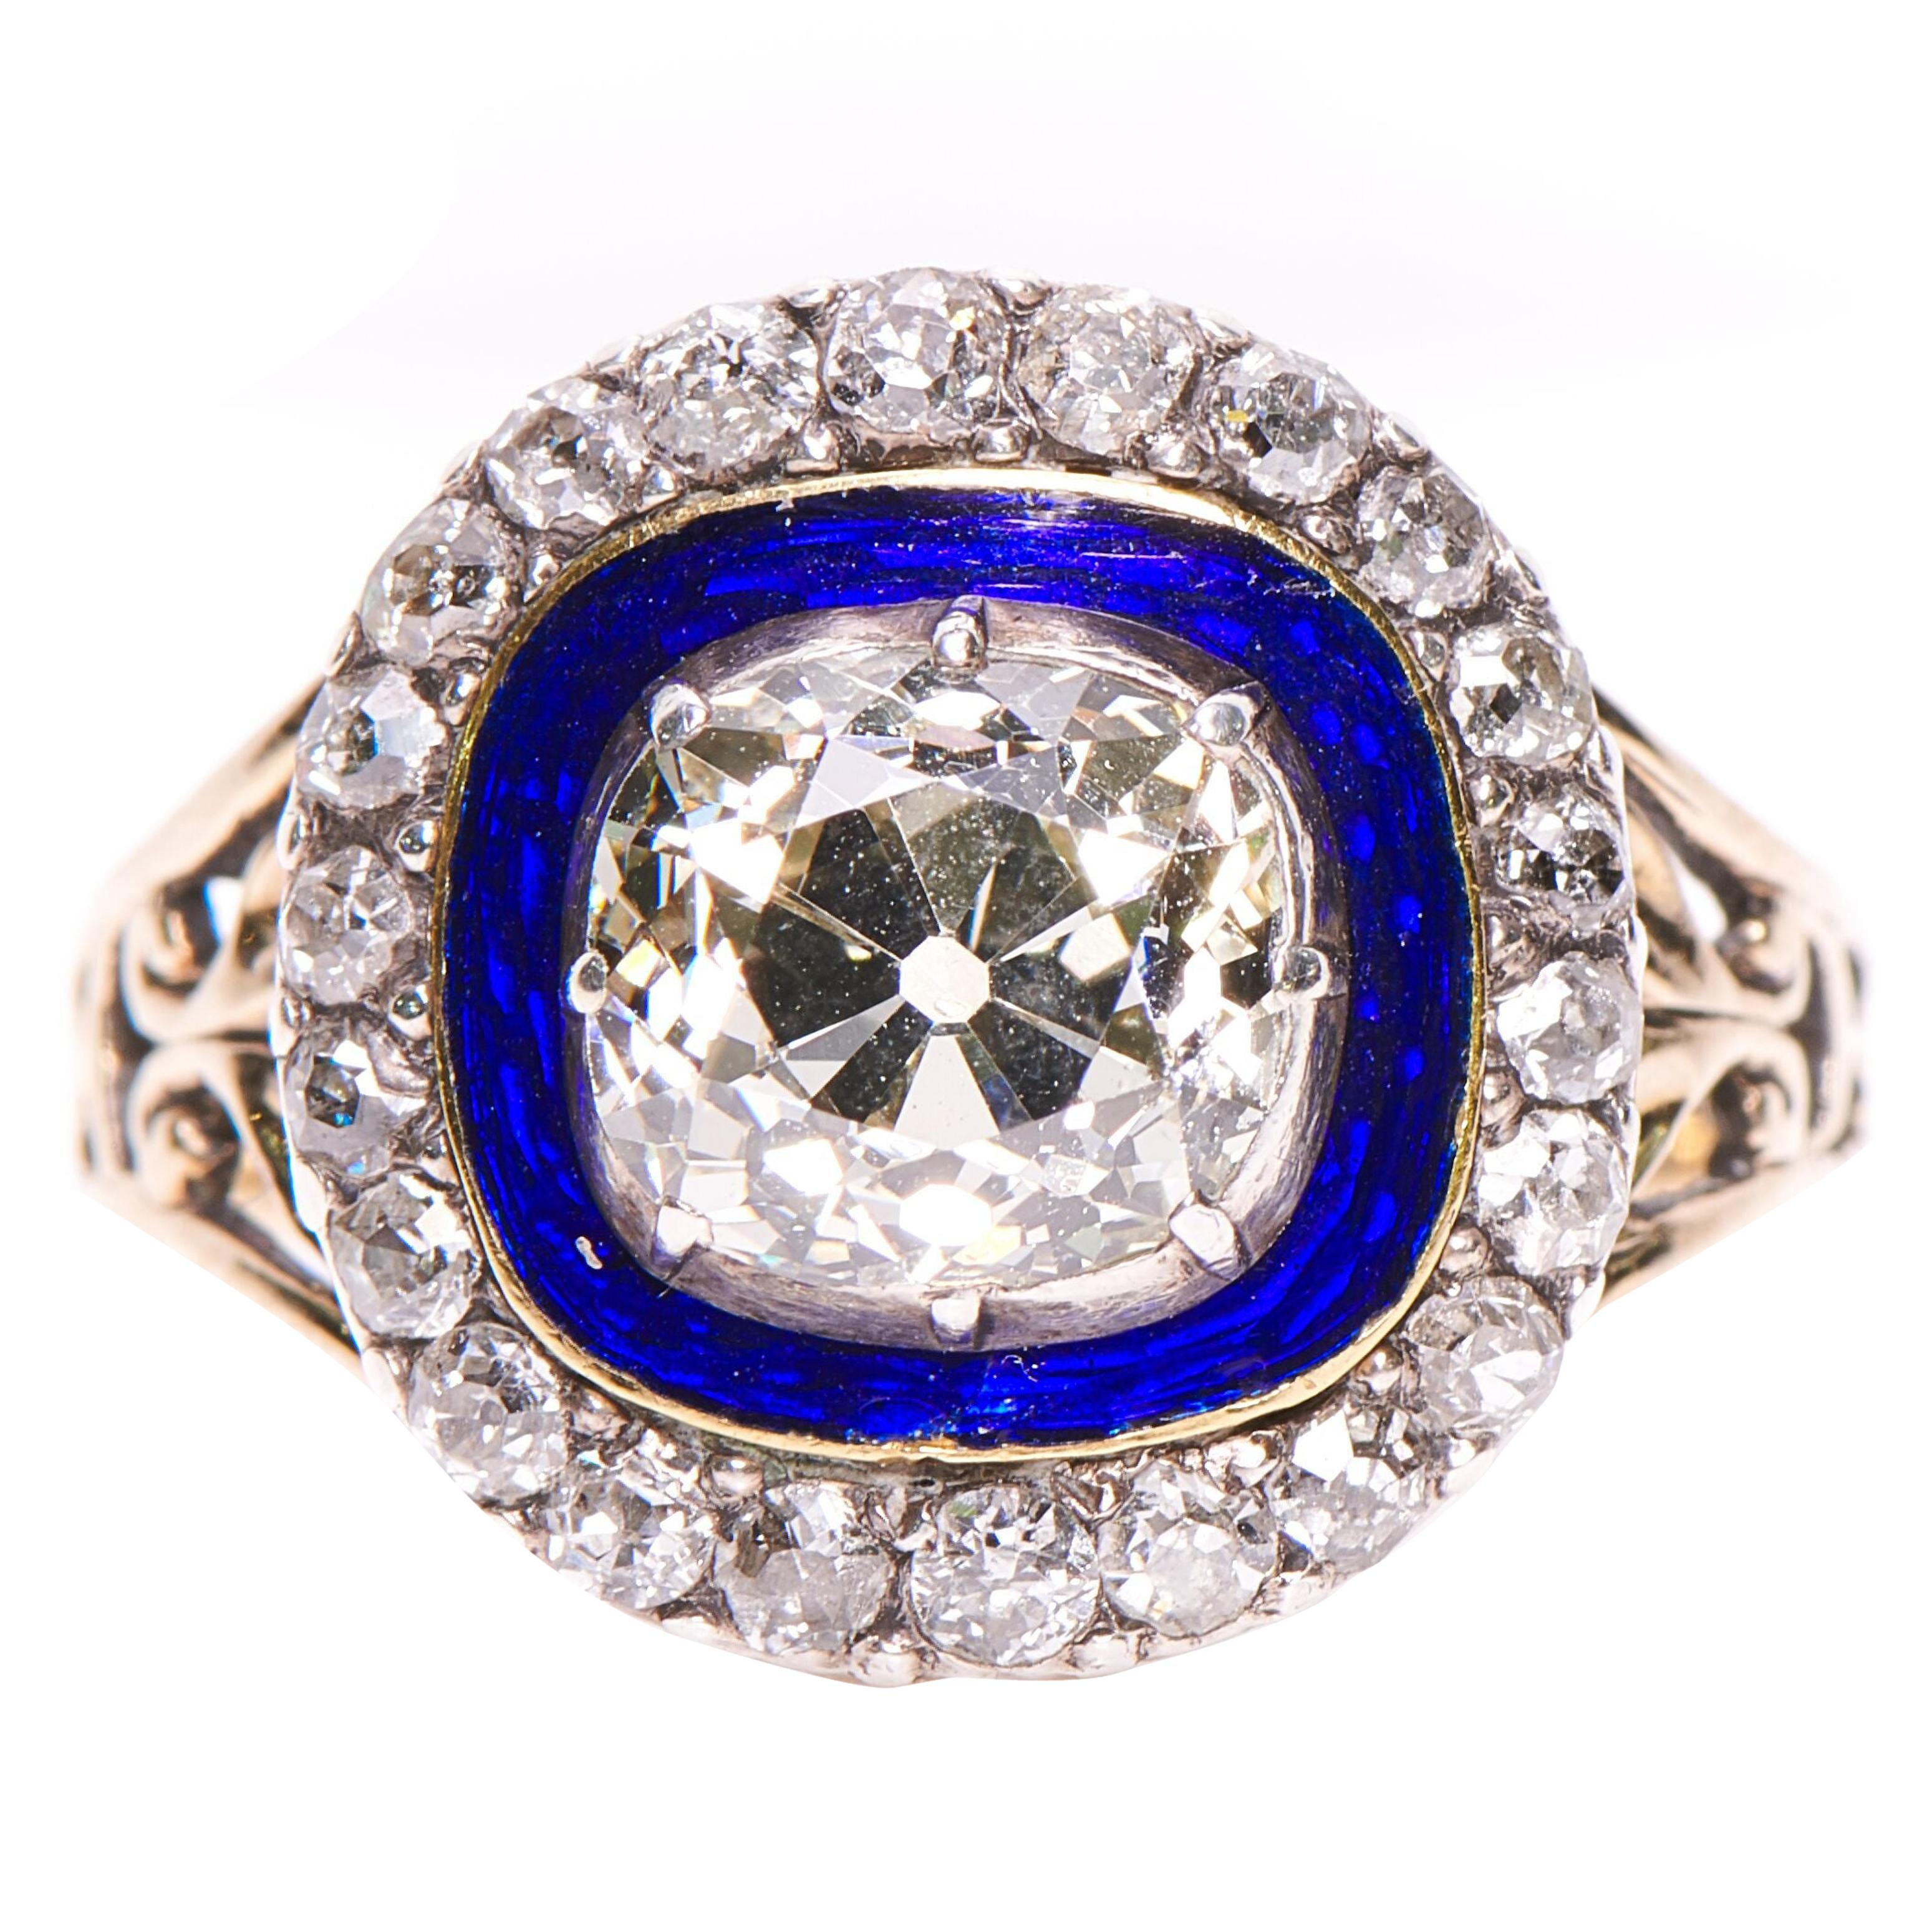 392b8453a746ec Antique and Vintage Rings and Diamond Rings For Sale at 1stdibs